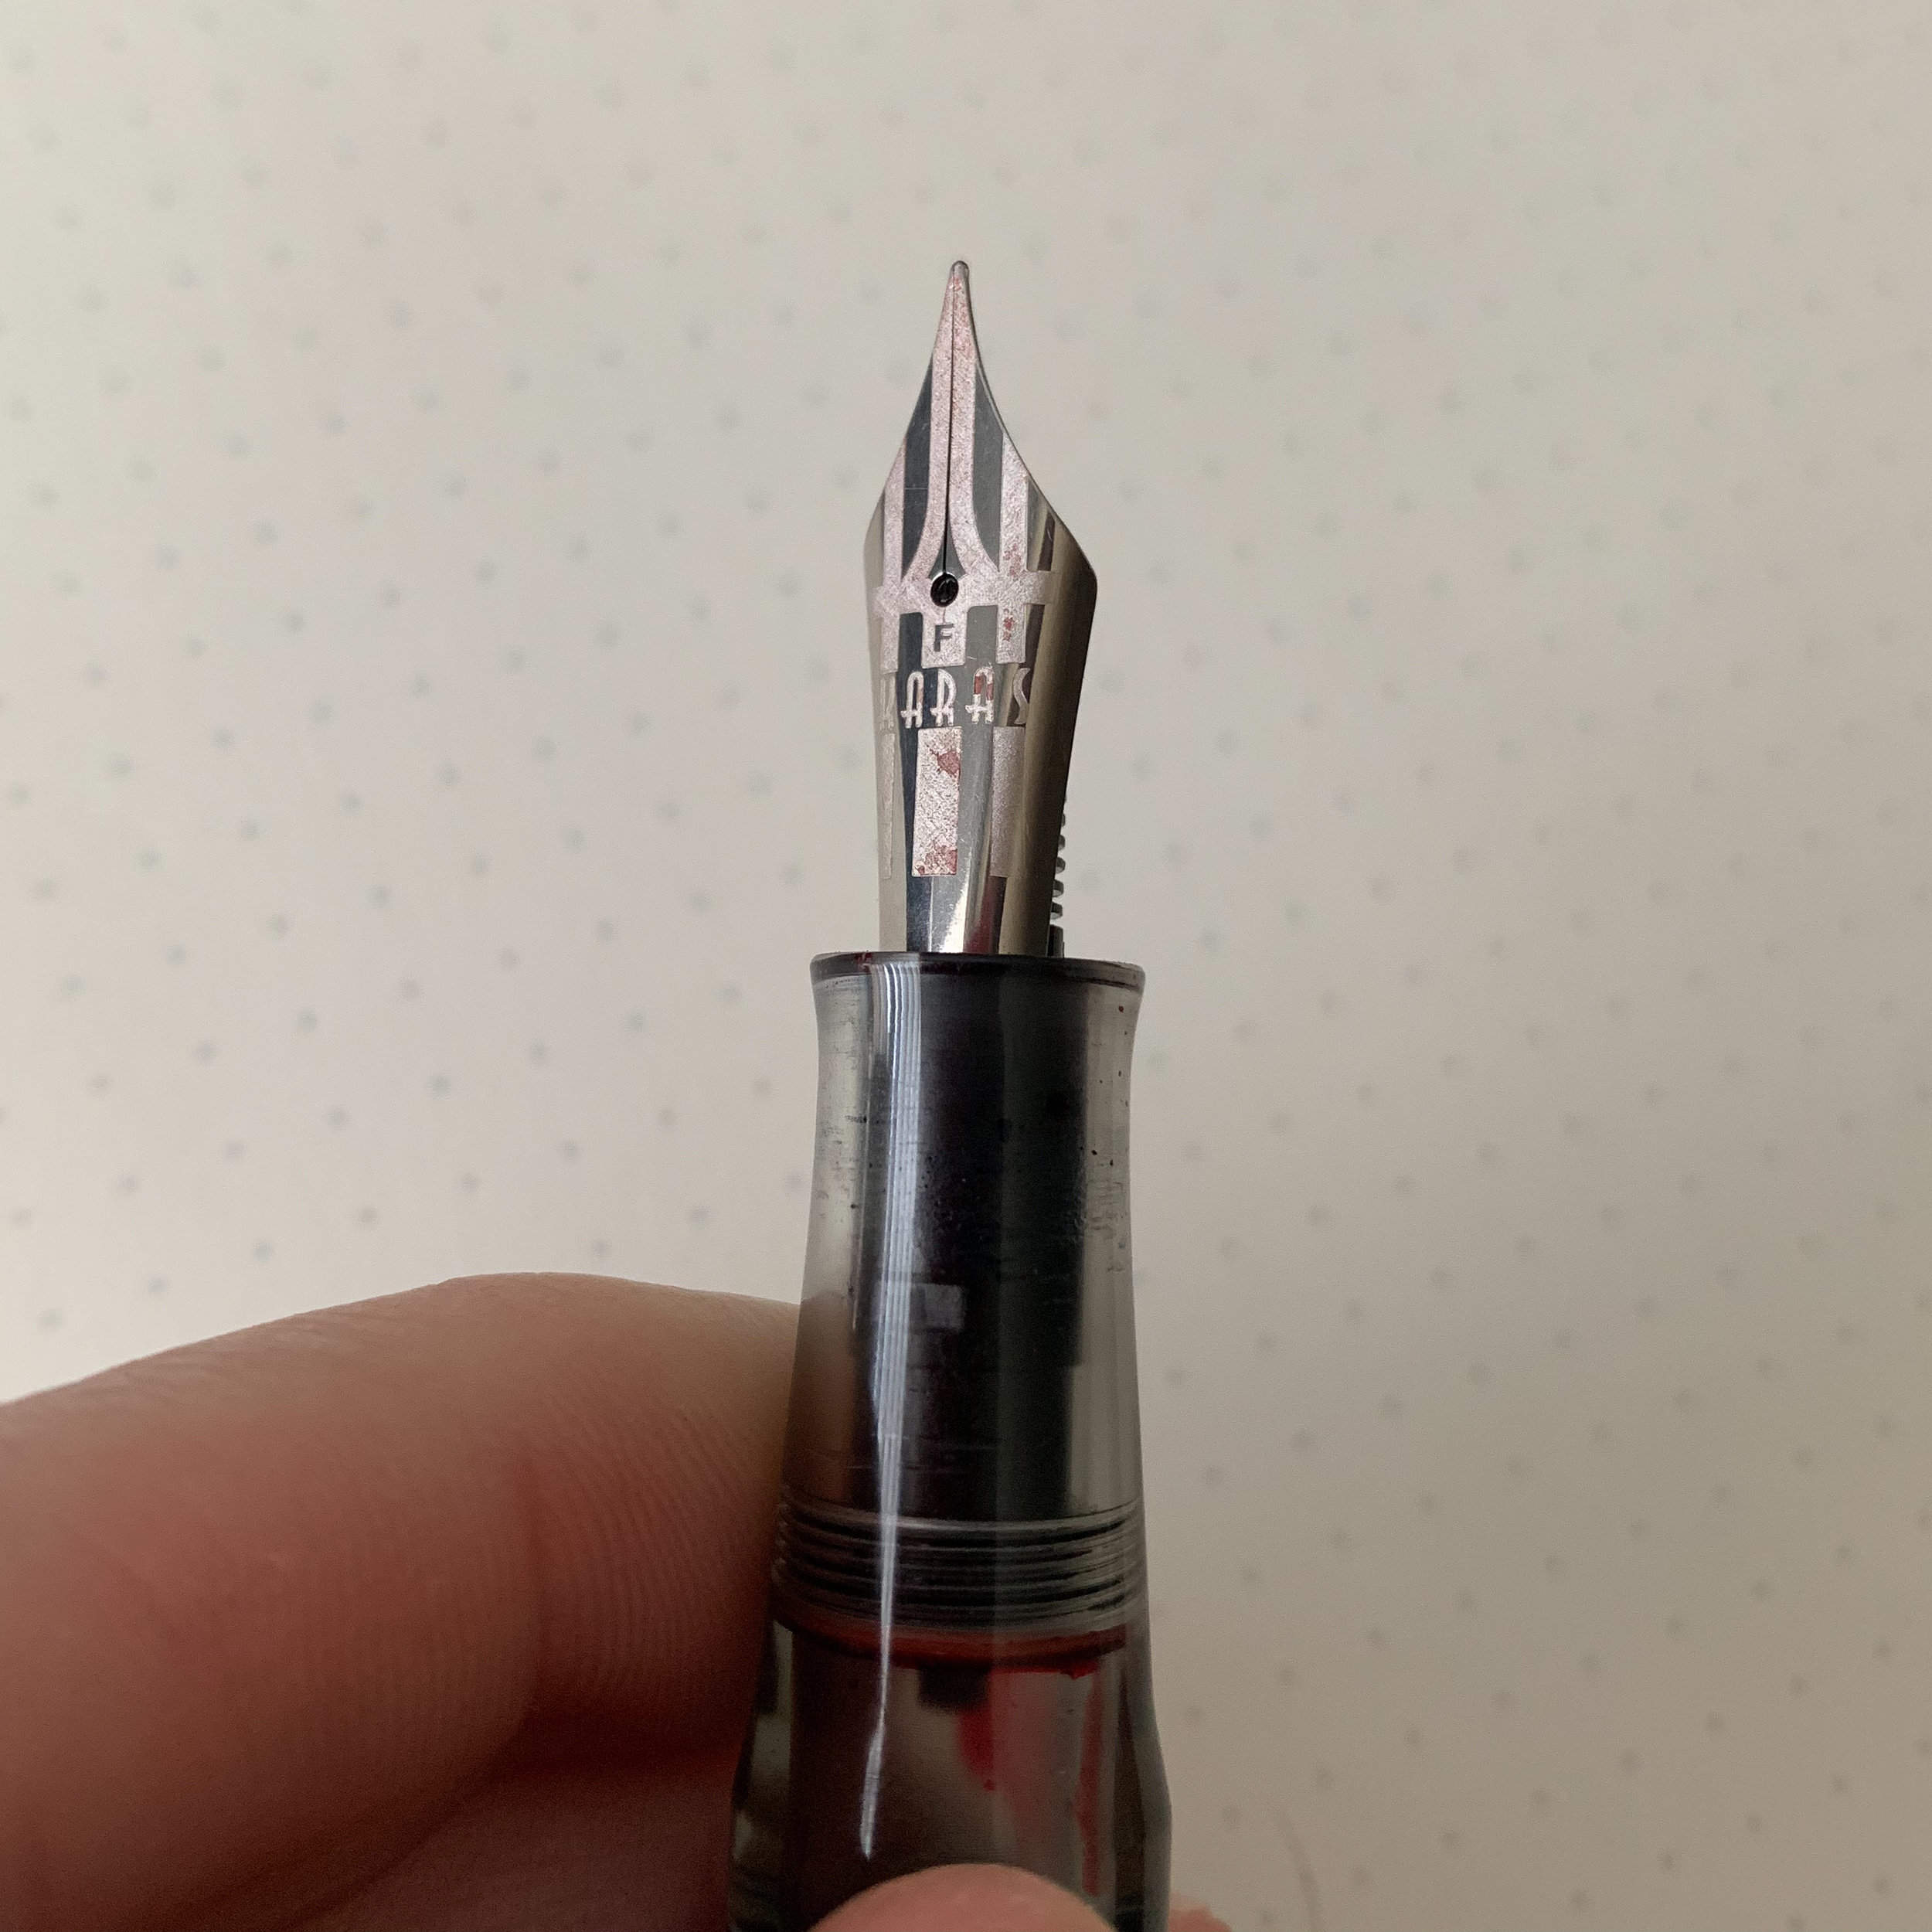 Karas Kustoms went above and beyond on the nib engraving. I love the new logo.